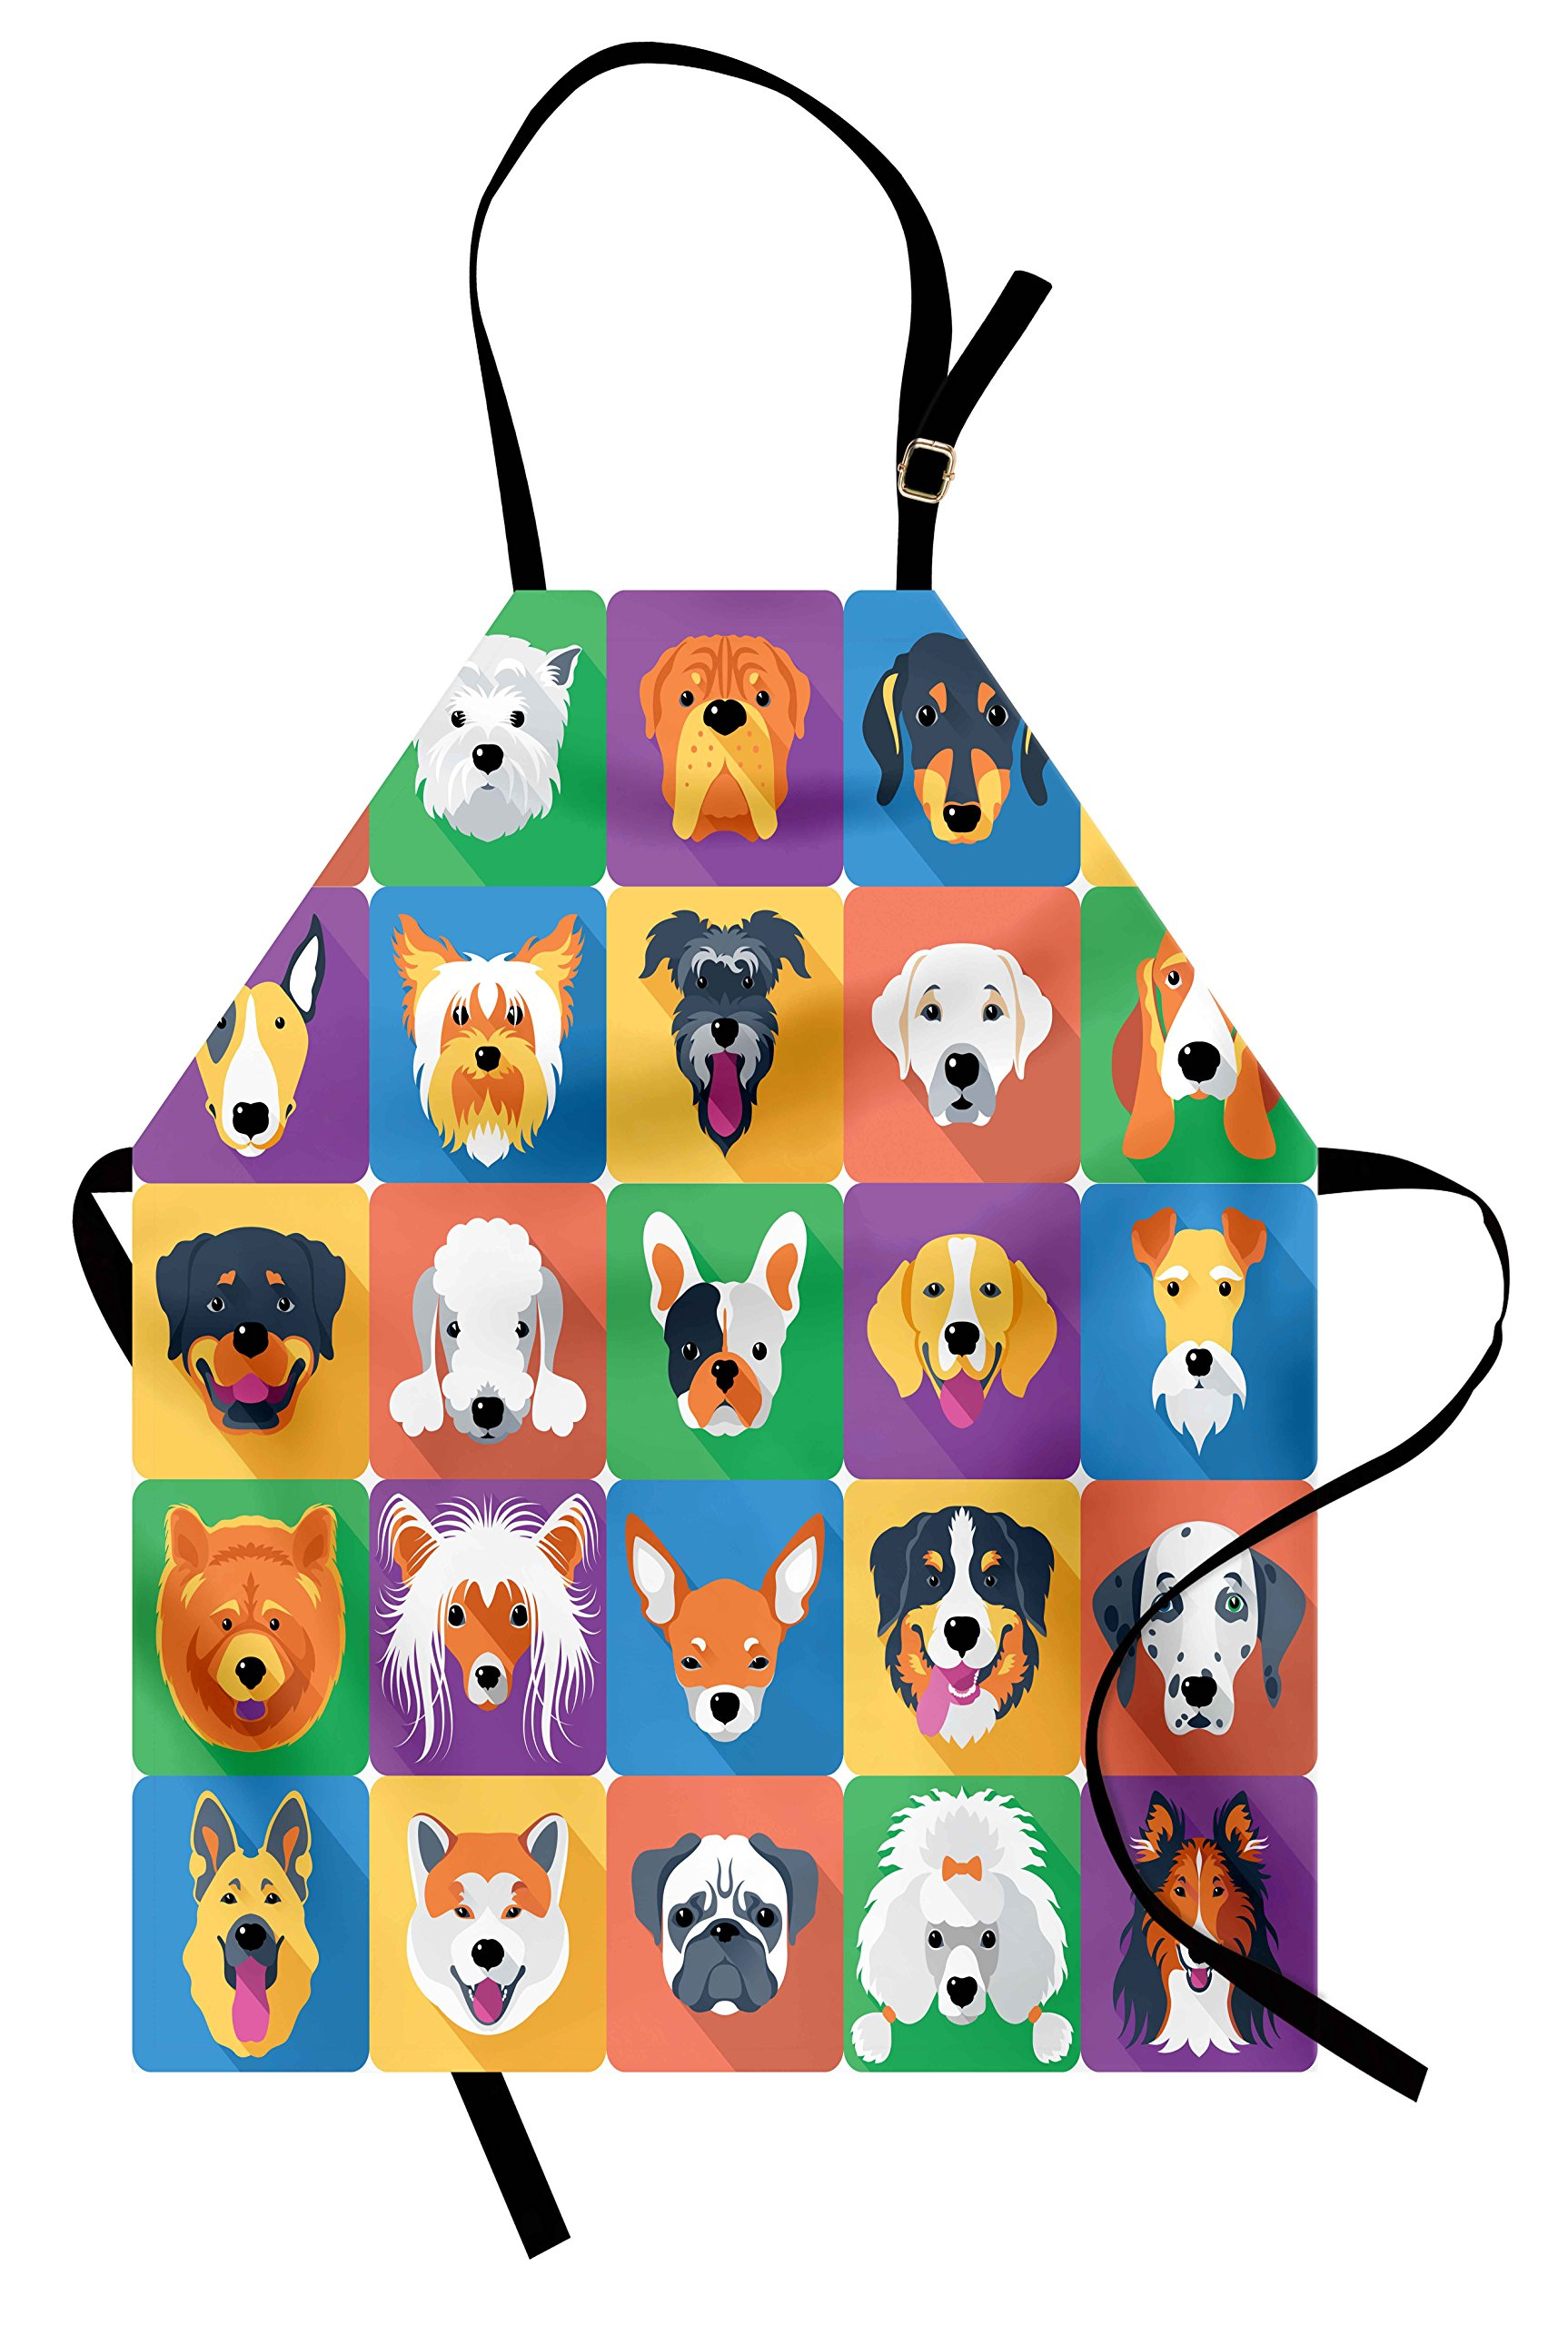 Ambesonne Dog Apron, Dog Breeds Profiles Pets Shepherd Terrier Labrador Domestic Animals Illustration, Unisex Kitchen Bib Apron with Adjustable Neck for Cooking Baking Gardening, Purple Green by Ambesonne (Image #1)